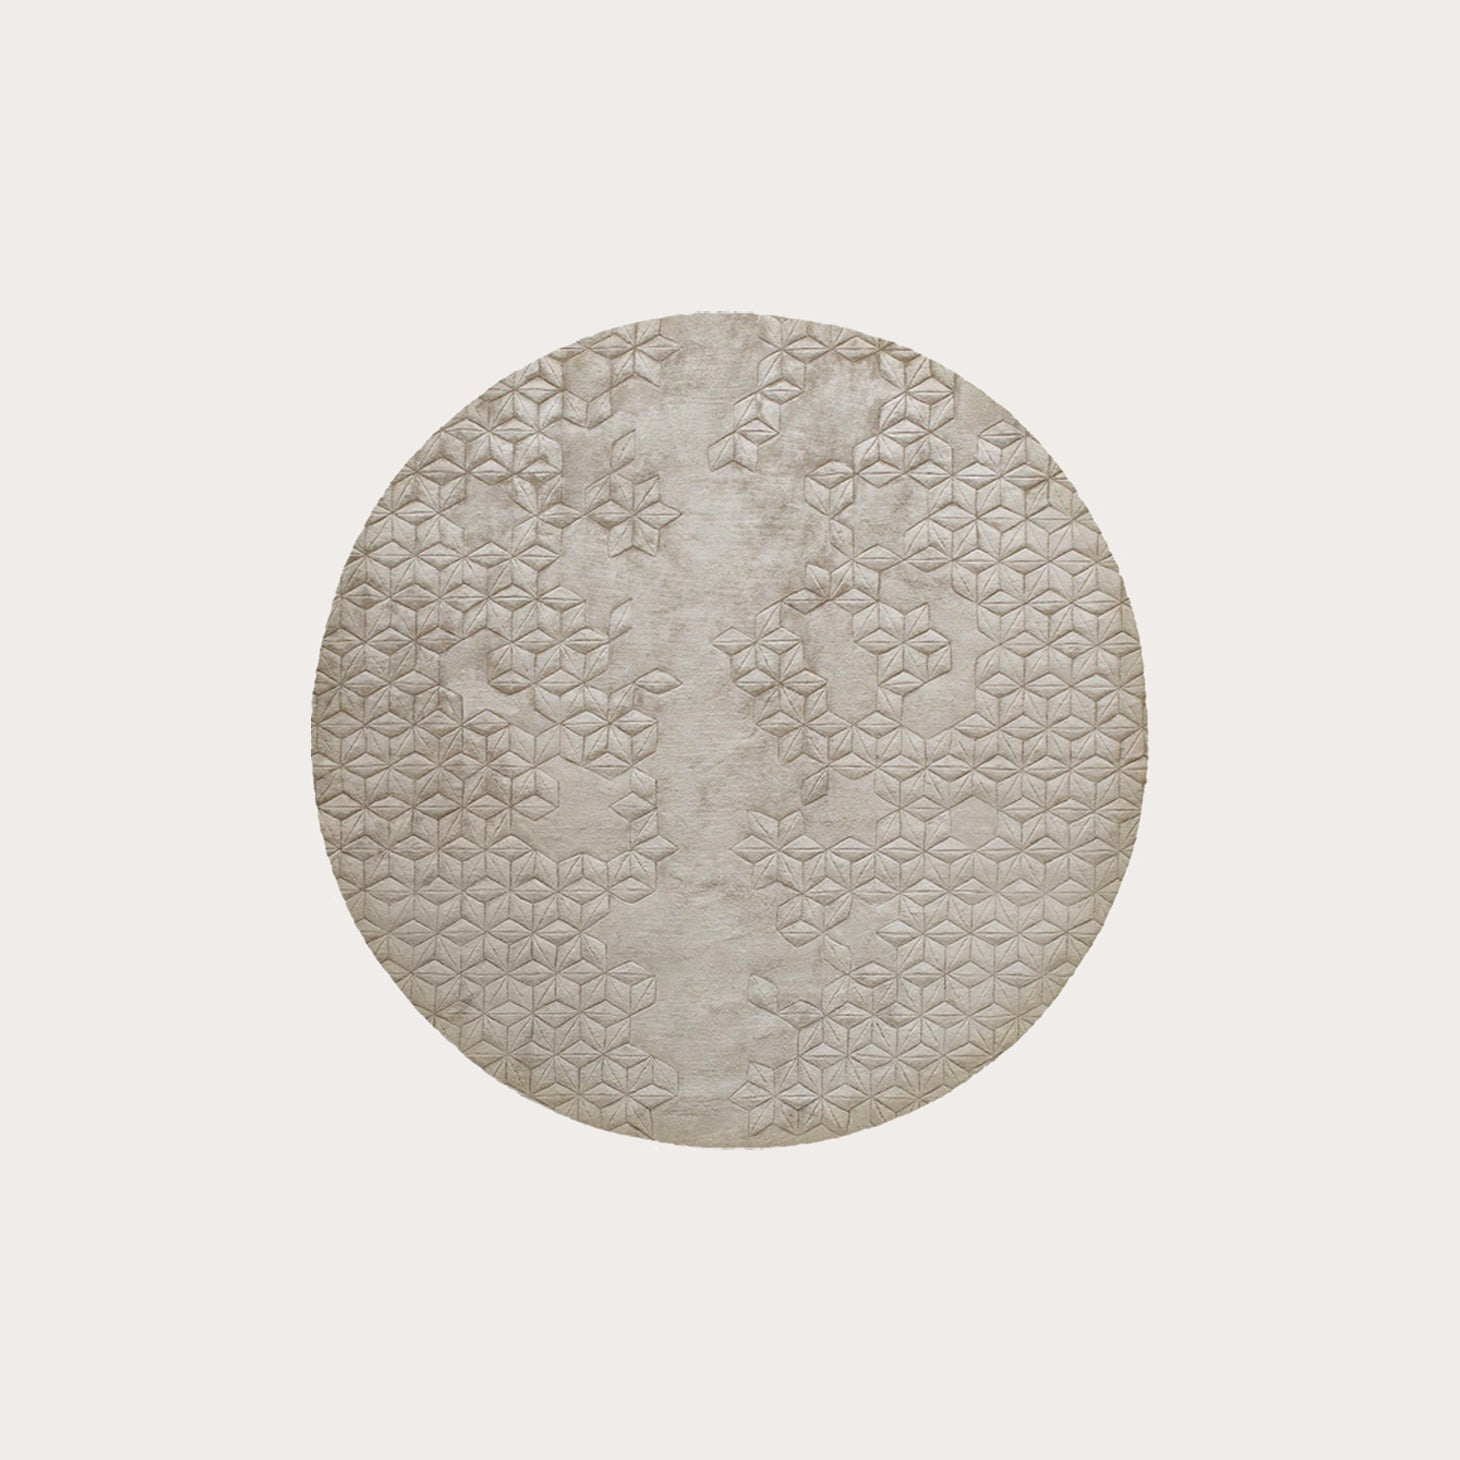 Star Silk Round Rugs Helen Amy Murray Designer Furniture Sku: 391-150-11463